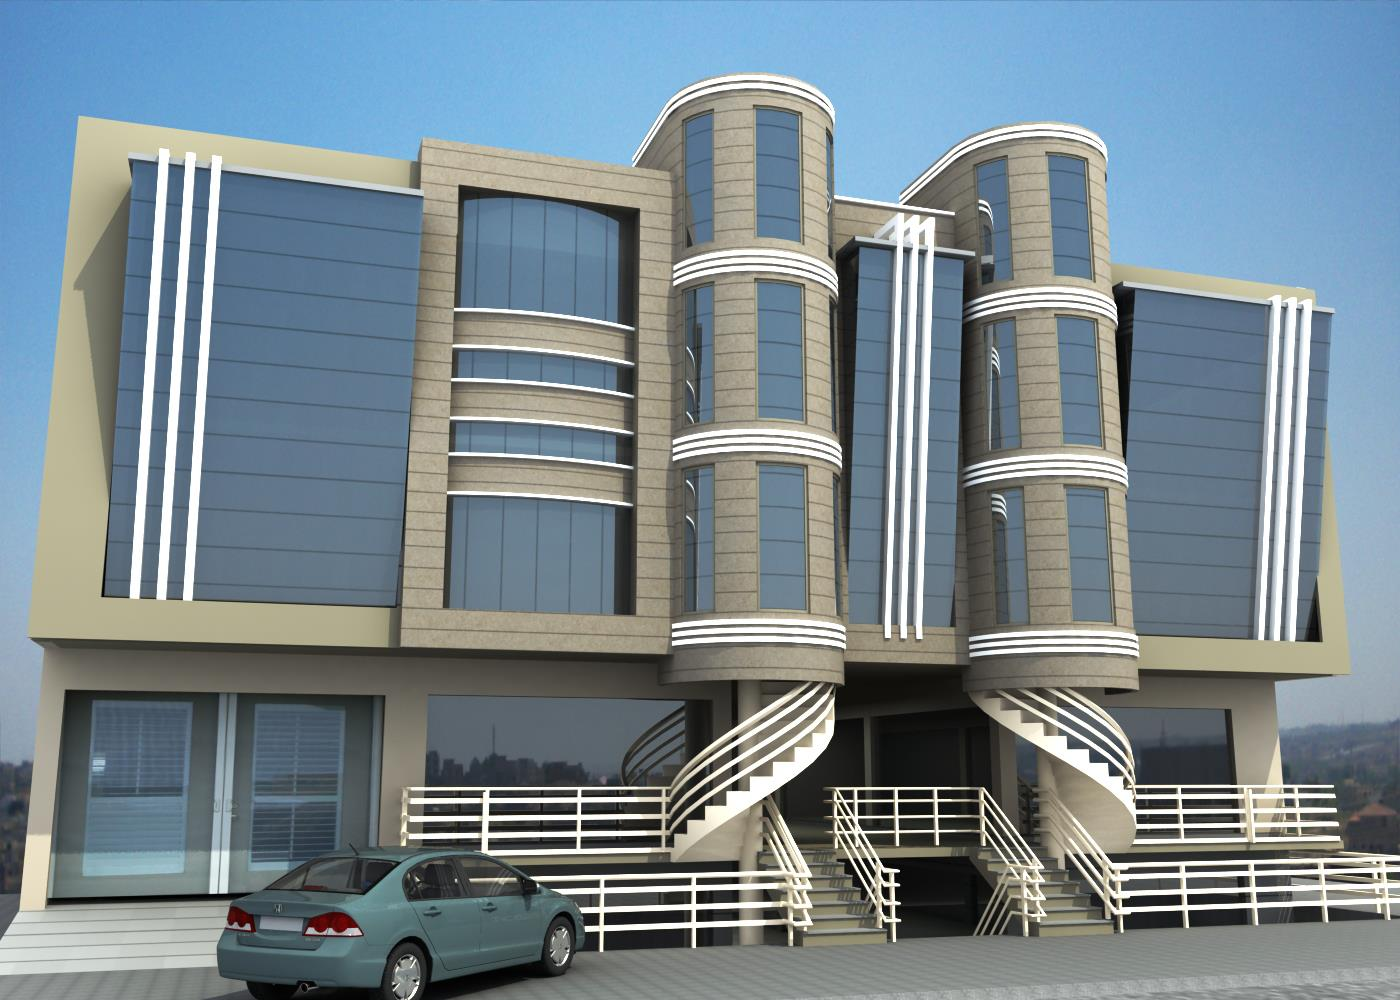 Design Of Front Elevation Of Commercial Building : Commercial buildng design d architecture visualizations